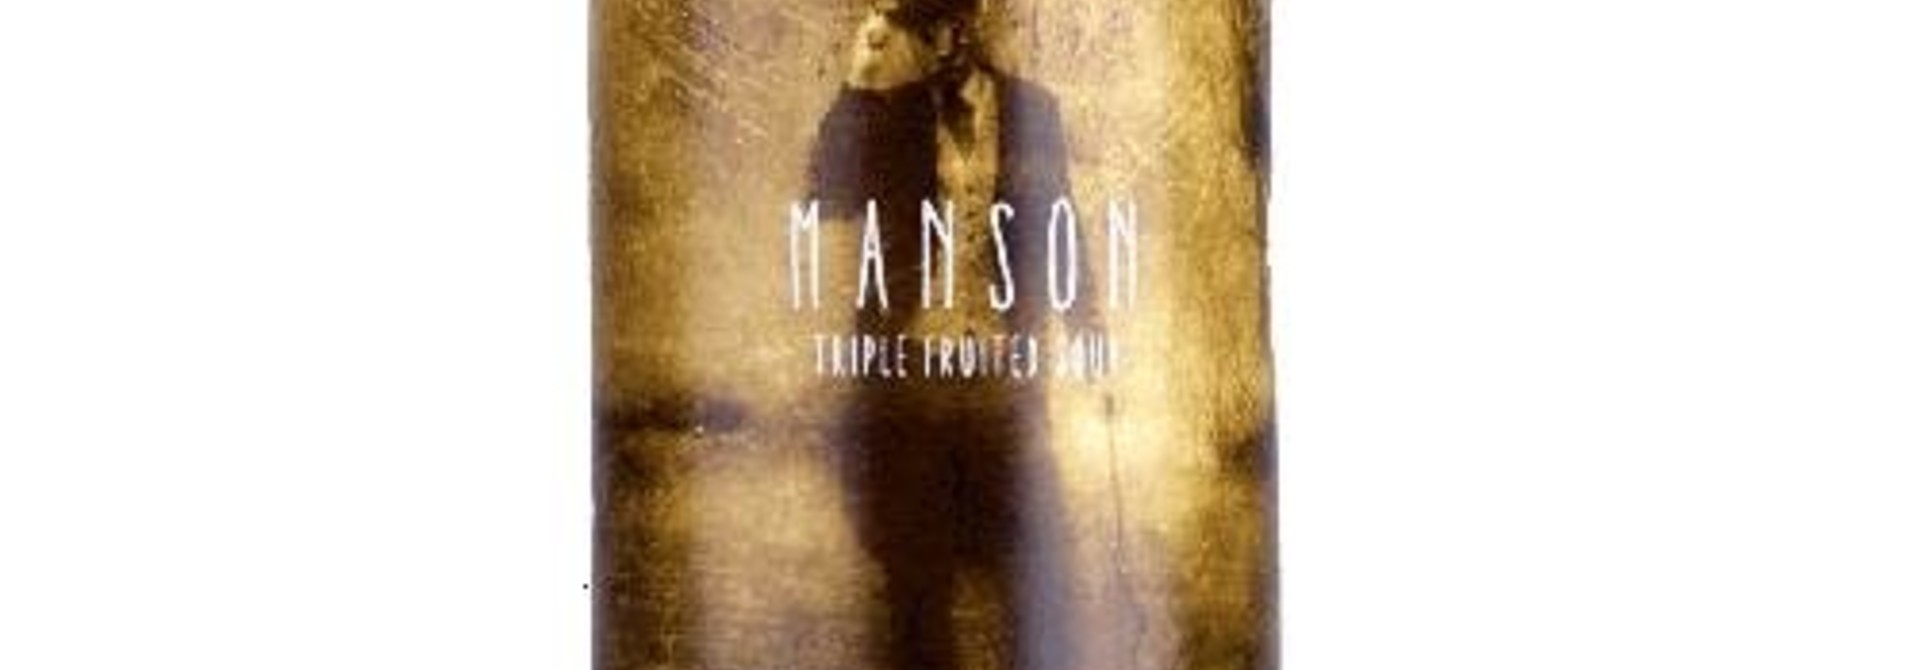 PARANORMAL / DRY & BITTER - MANSON